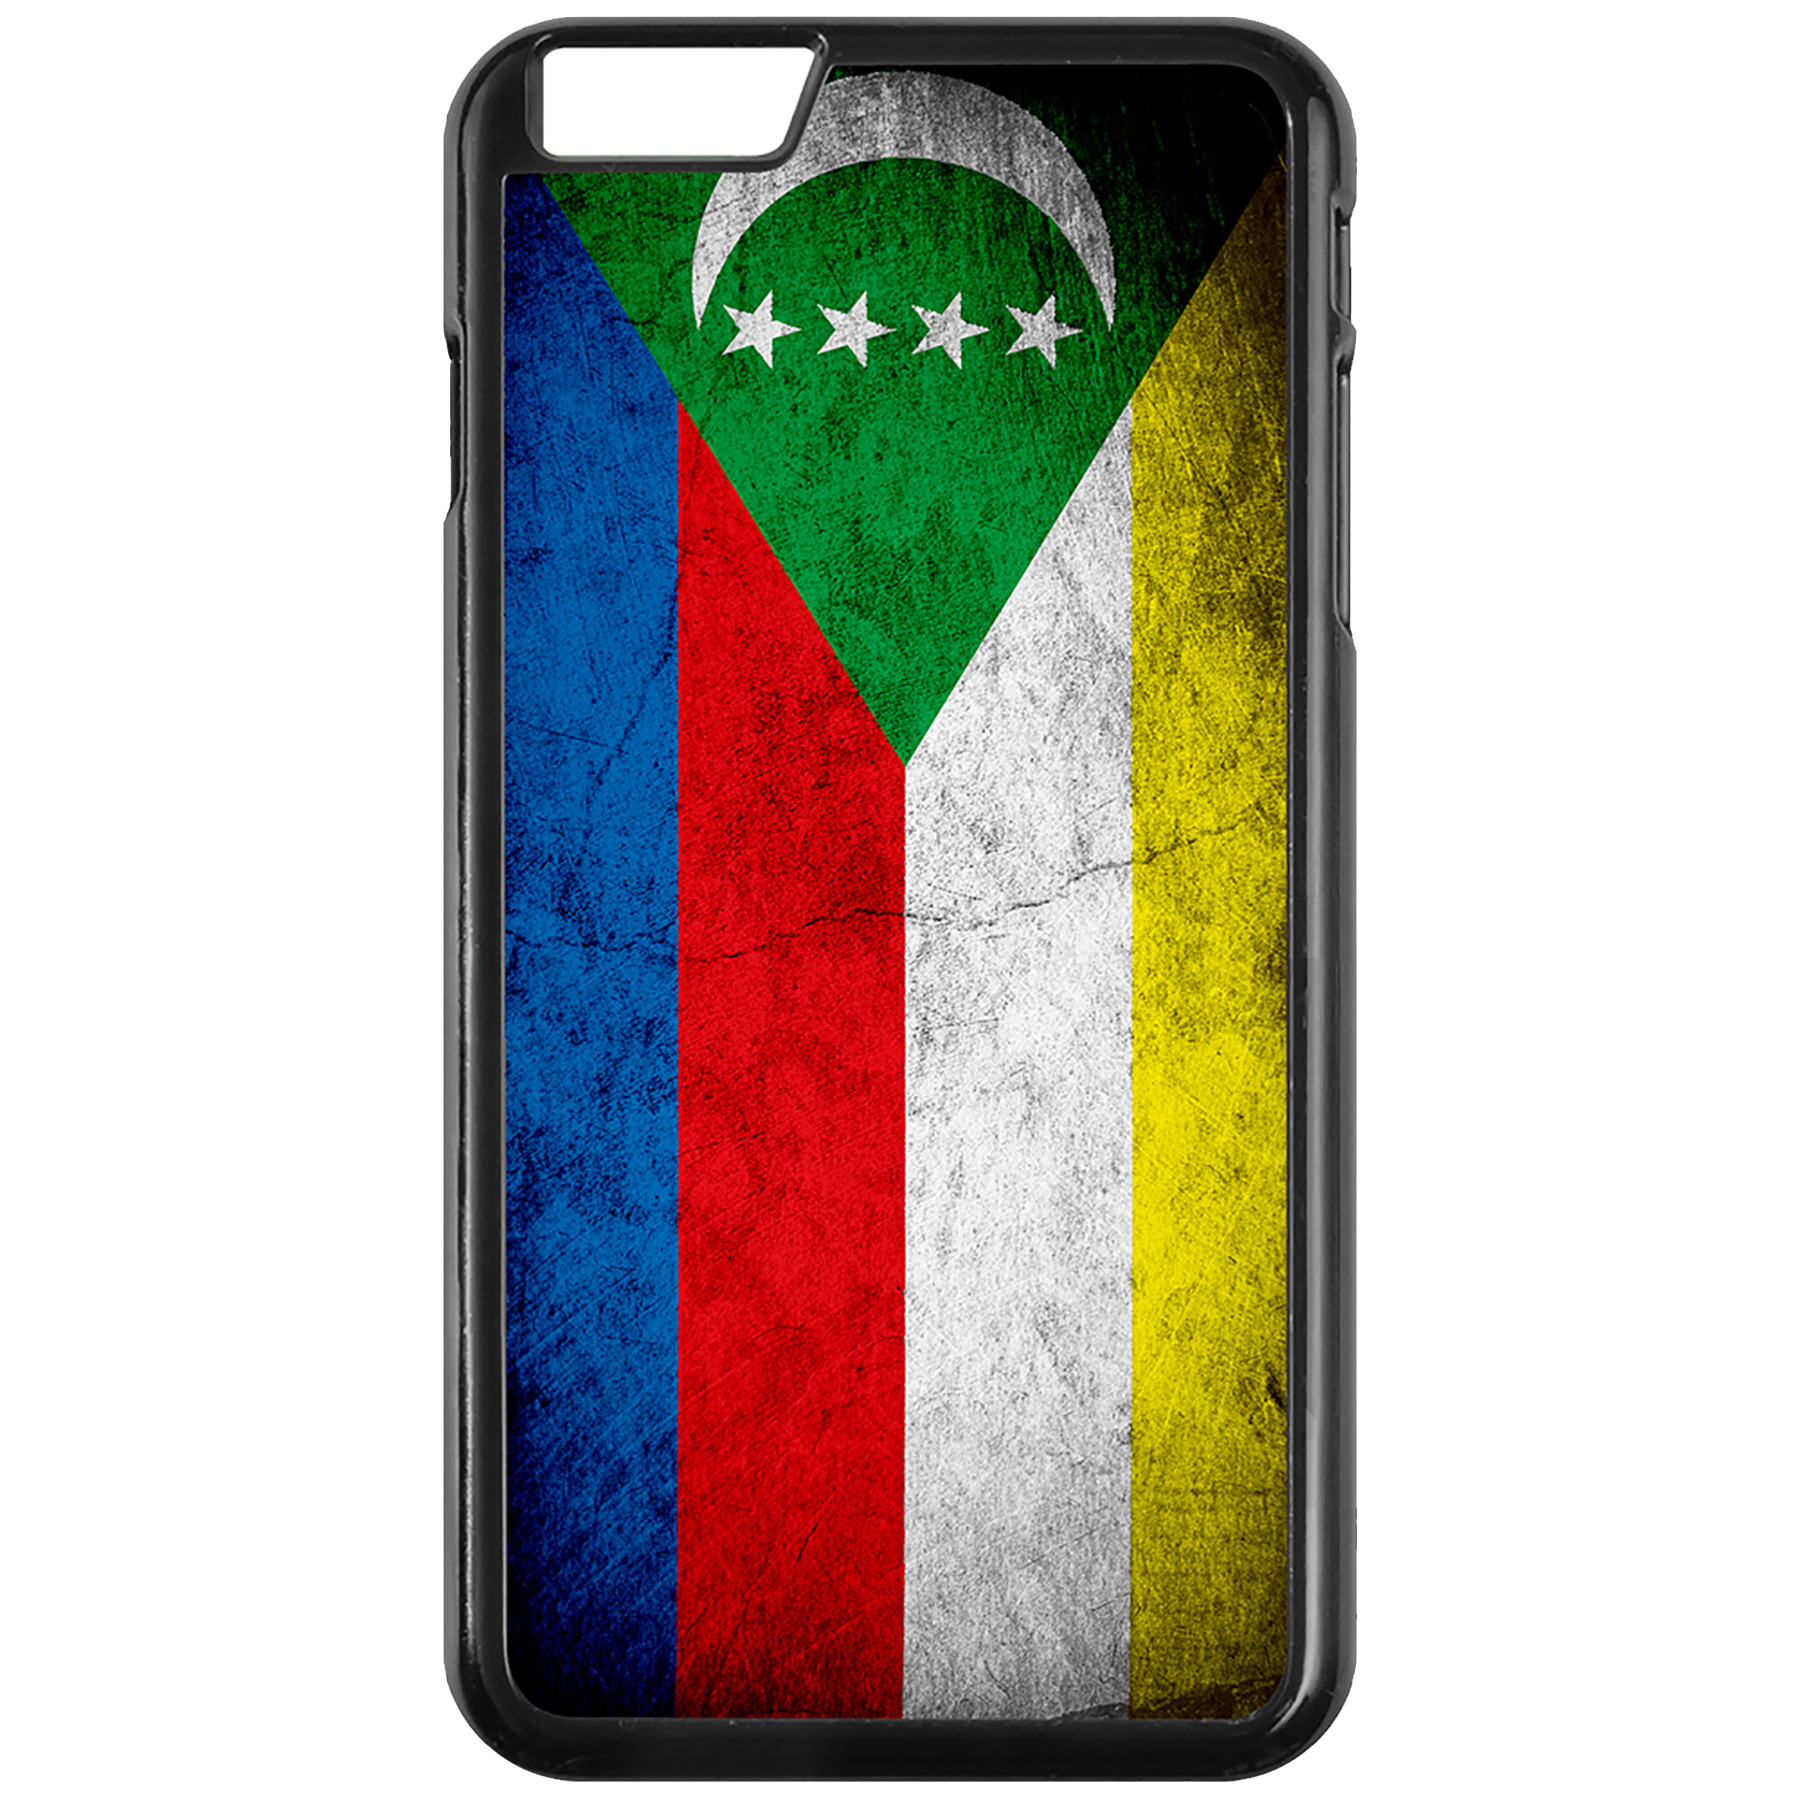 Apple-iPhone-Case-with-Flag-of-Comoros-Comorian-Many-Design-Options thumbnail 72